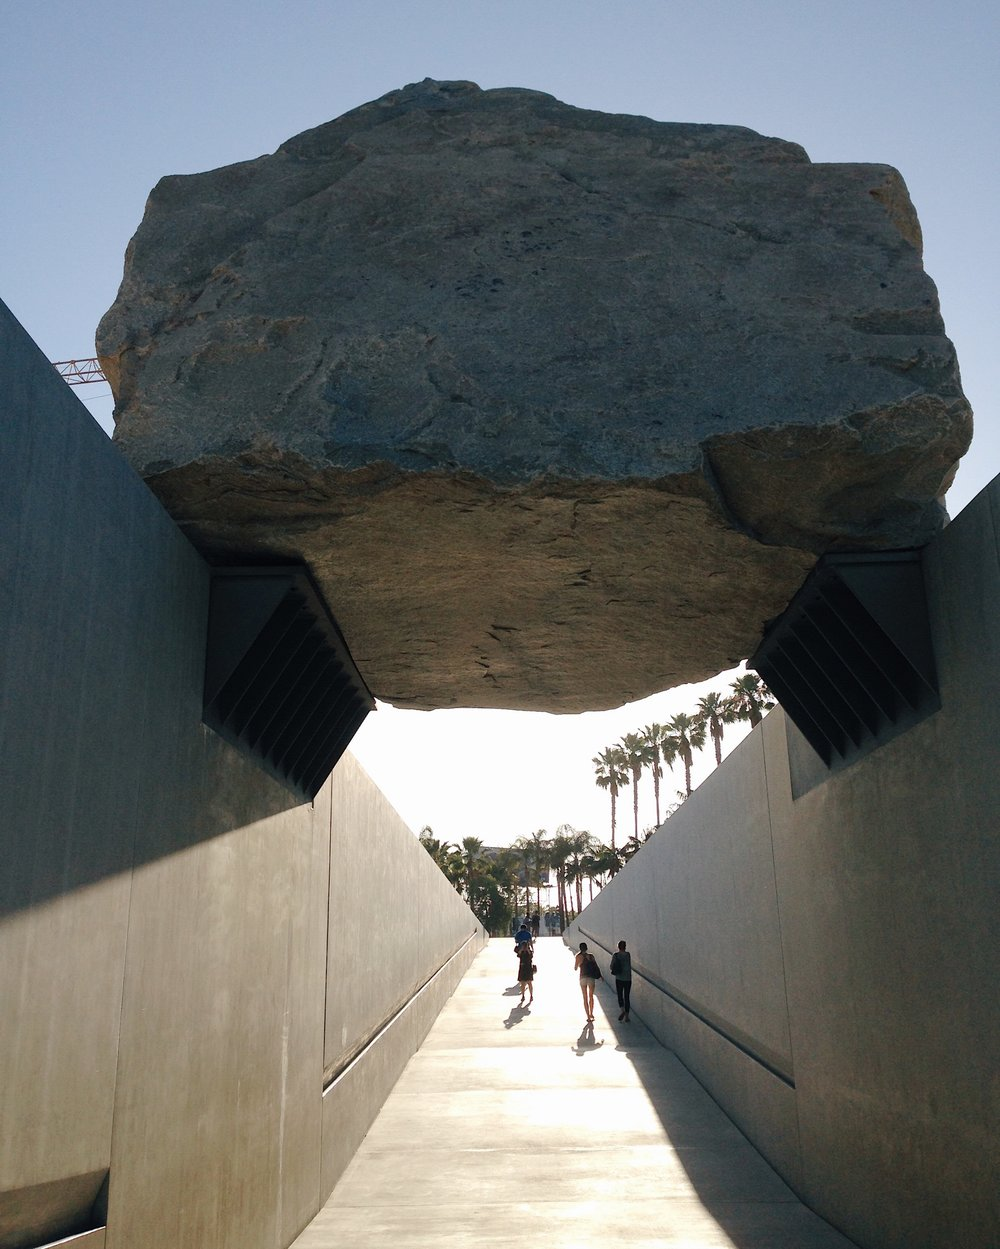 Levitated Mass - a large-scale 340-ton sculpture of a boulder by Michael Heizer outside the LACMA.